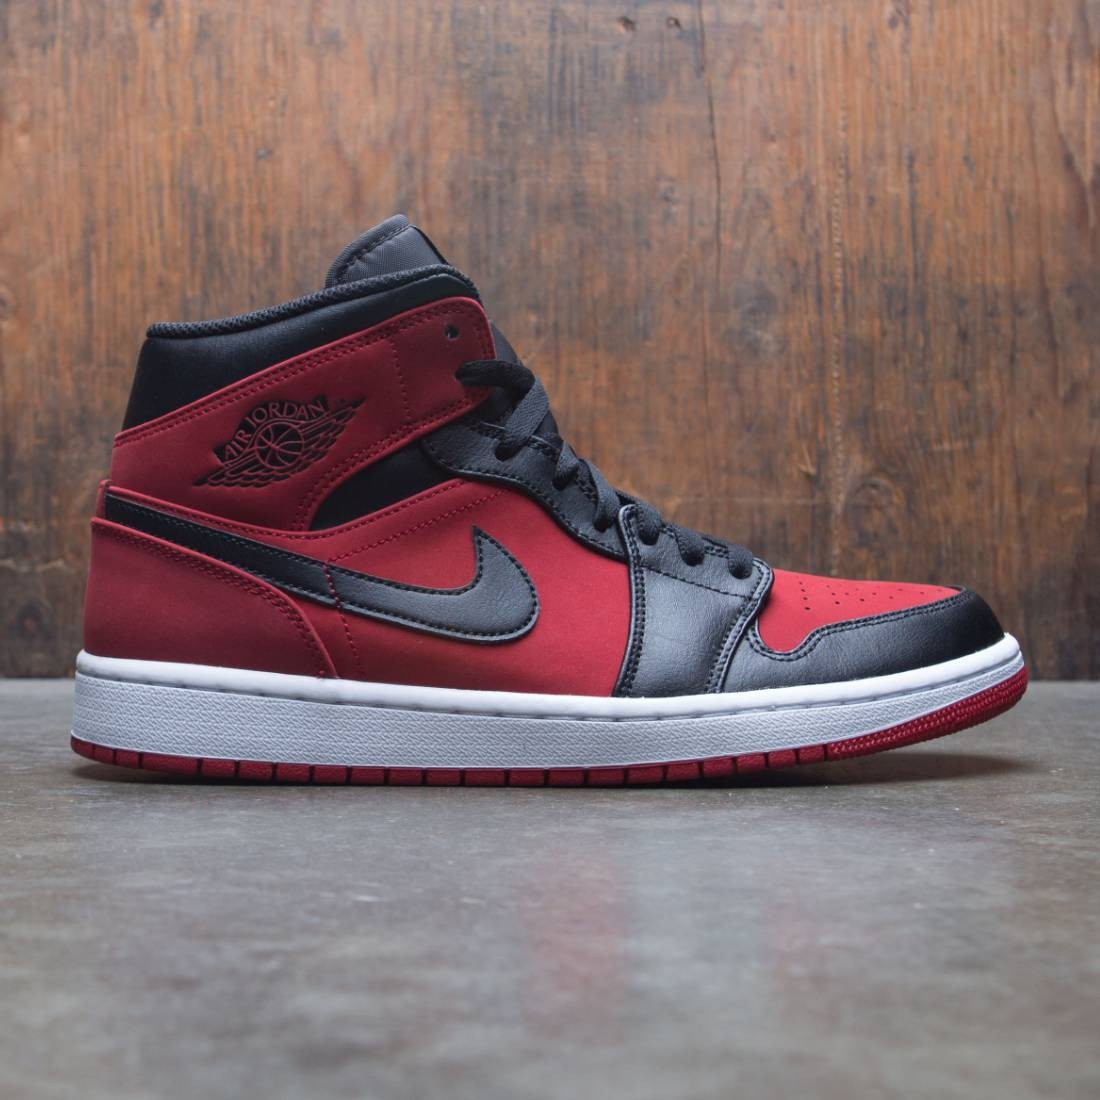 55b3c348061a jordan men air jordan 1 mid gym red black white